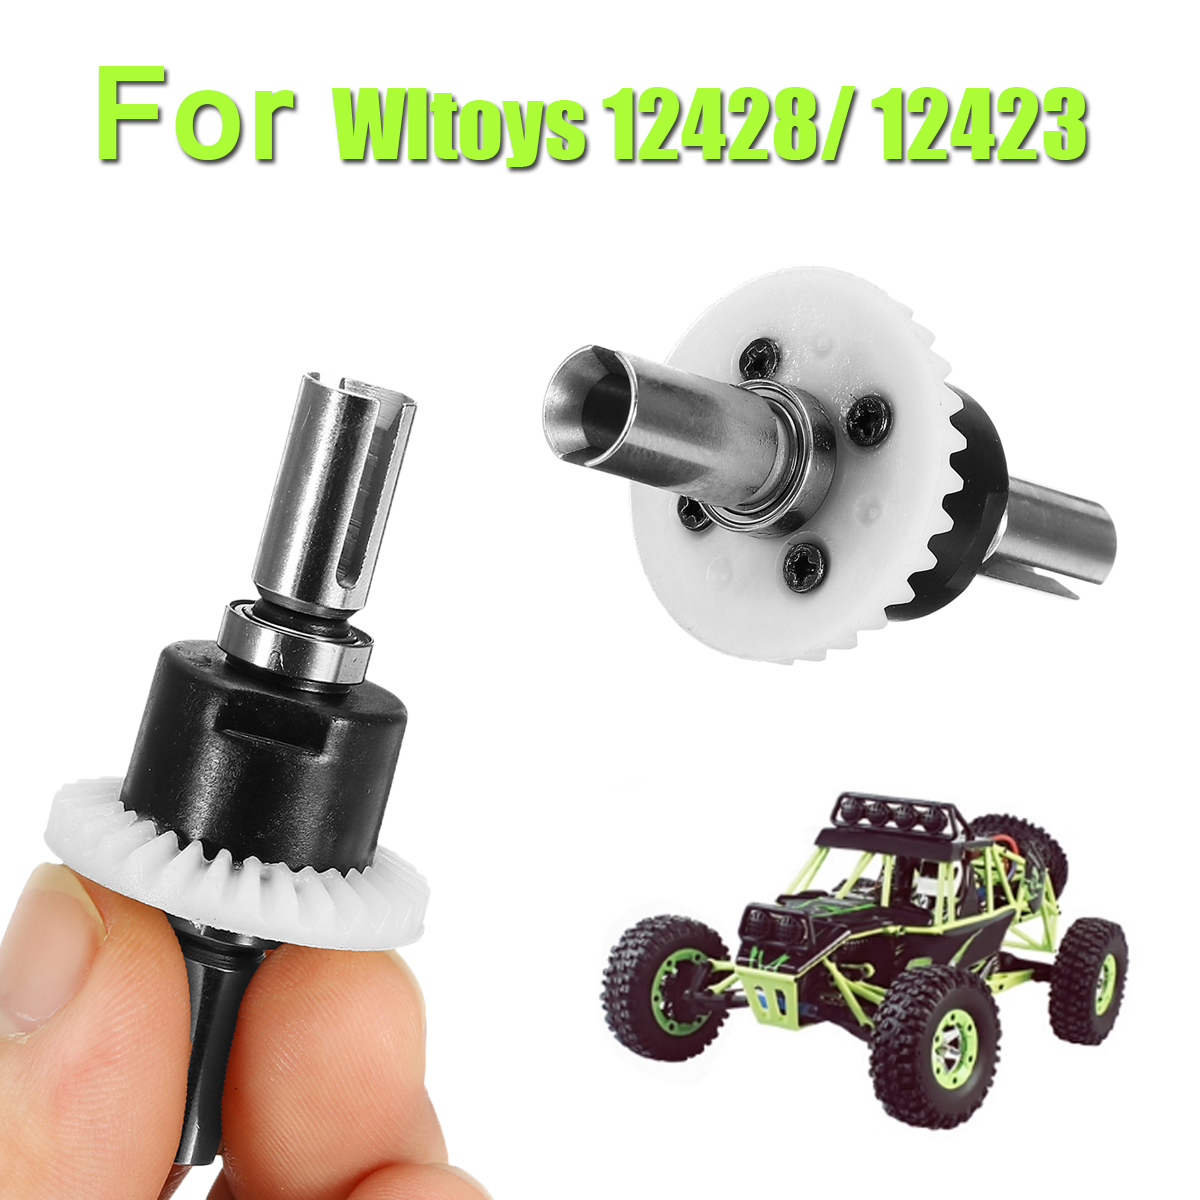 Diff Gear Front Spare Part For Wltoys 12428 12423 1/12 RC Car